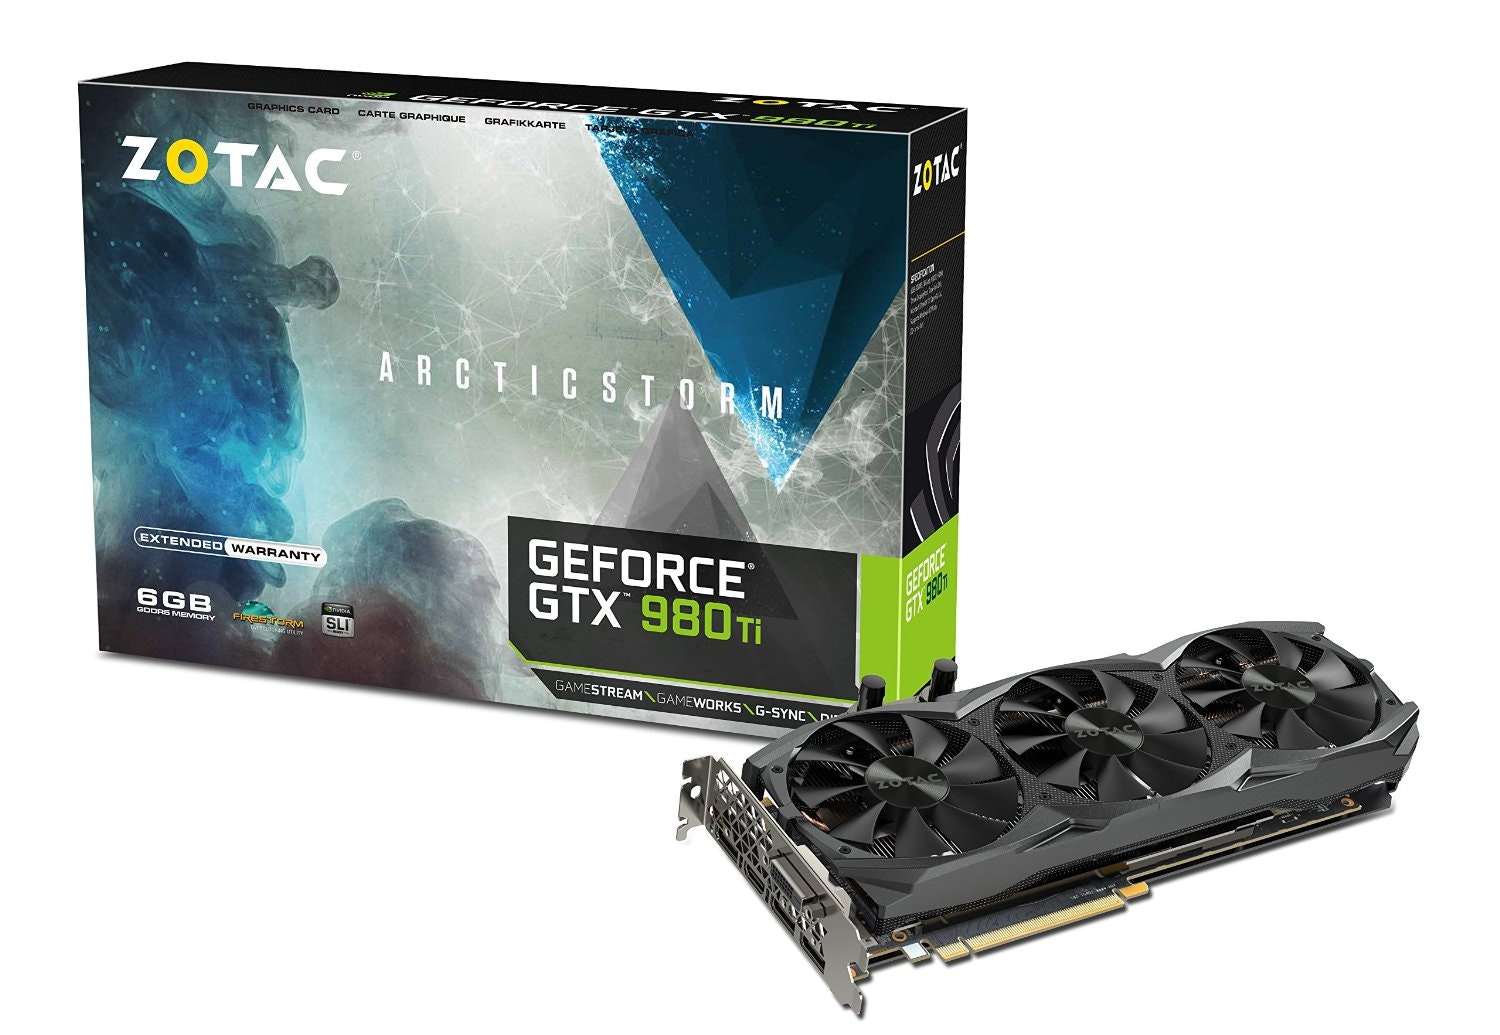 Amazon.com: ZOTAC GeForce GTX 980 Ti ArcticStorm 6GB 384-Bit GDDR5 PCI Express 3